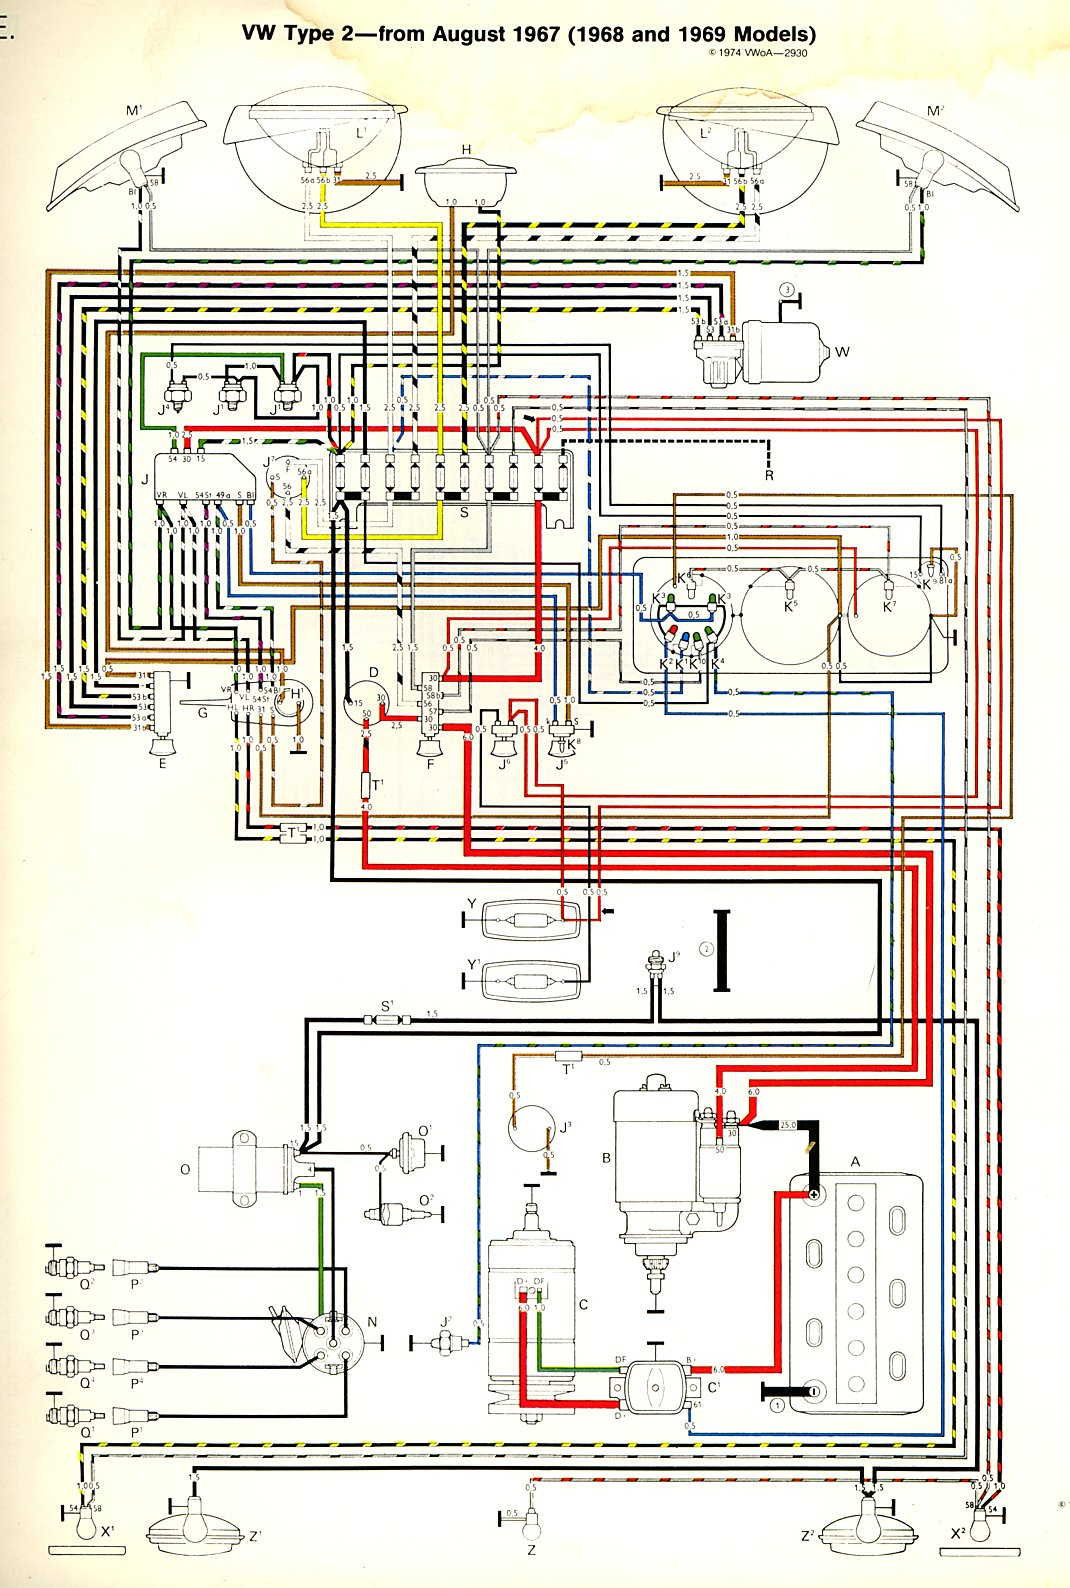 baybus_6869a 1968 69 bus wiring diagram thegoldenbug com 1968 vw bug fuse box at alyssarenee.co